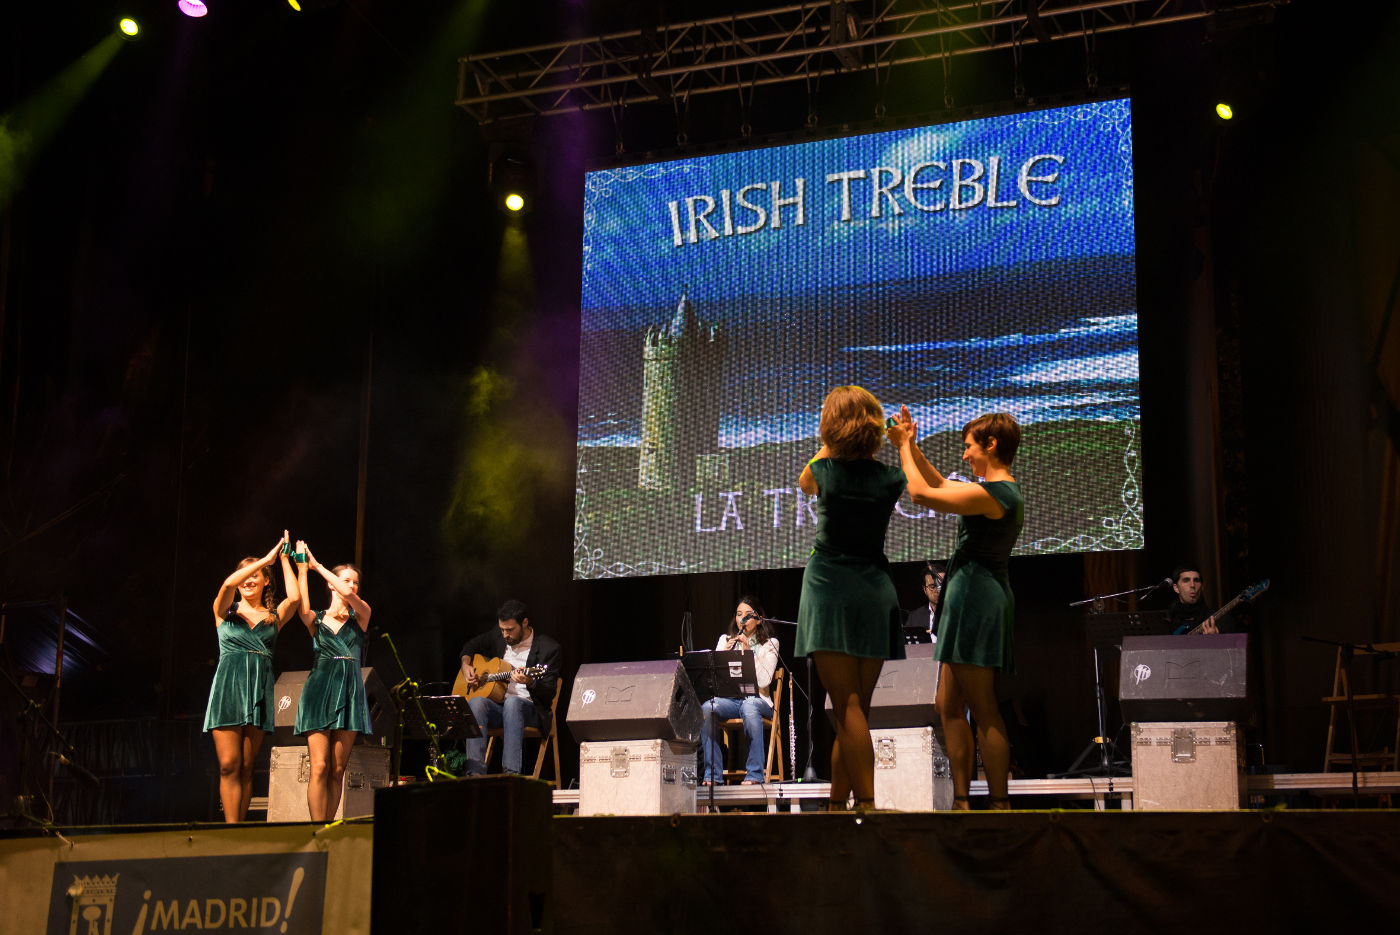 Irish Treble - Ribbondance